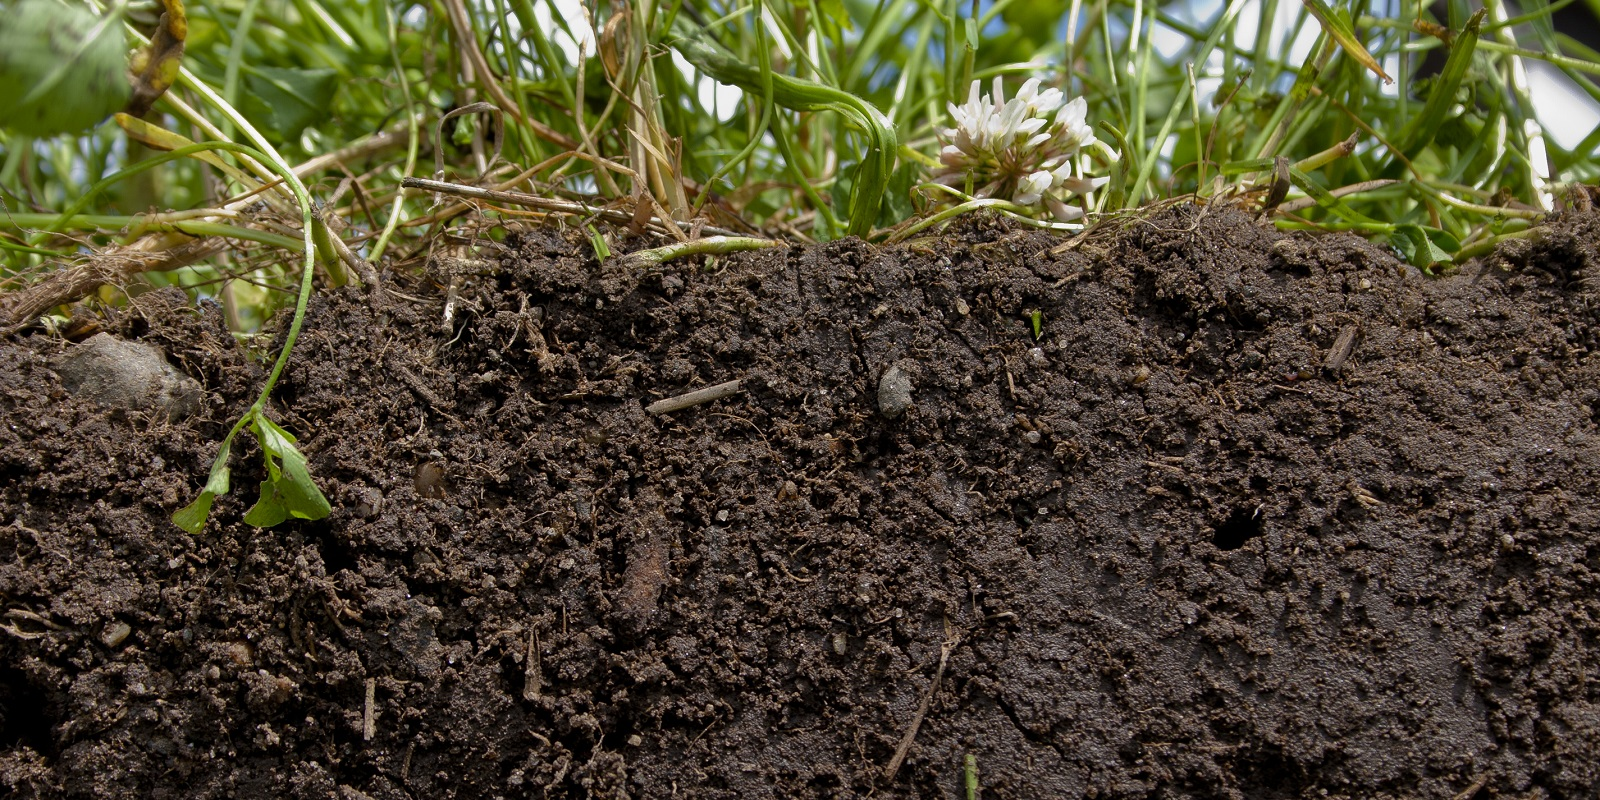 Swell effect, improves soil structure